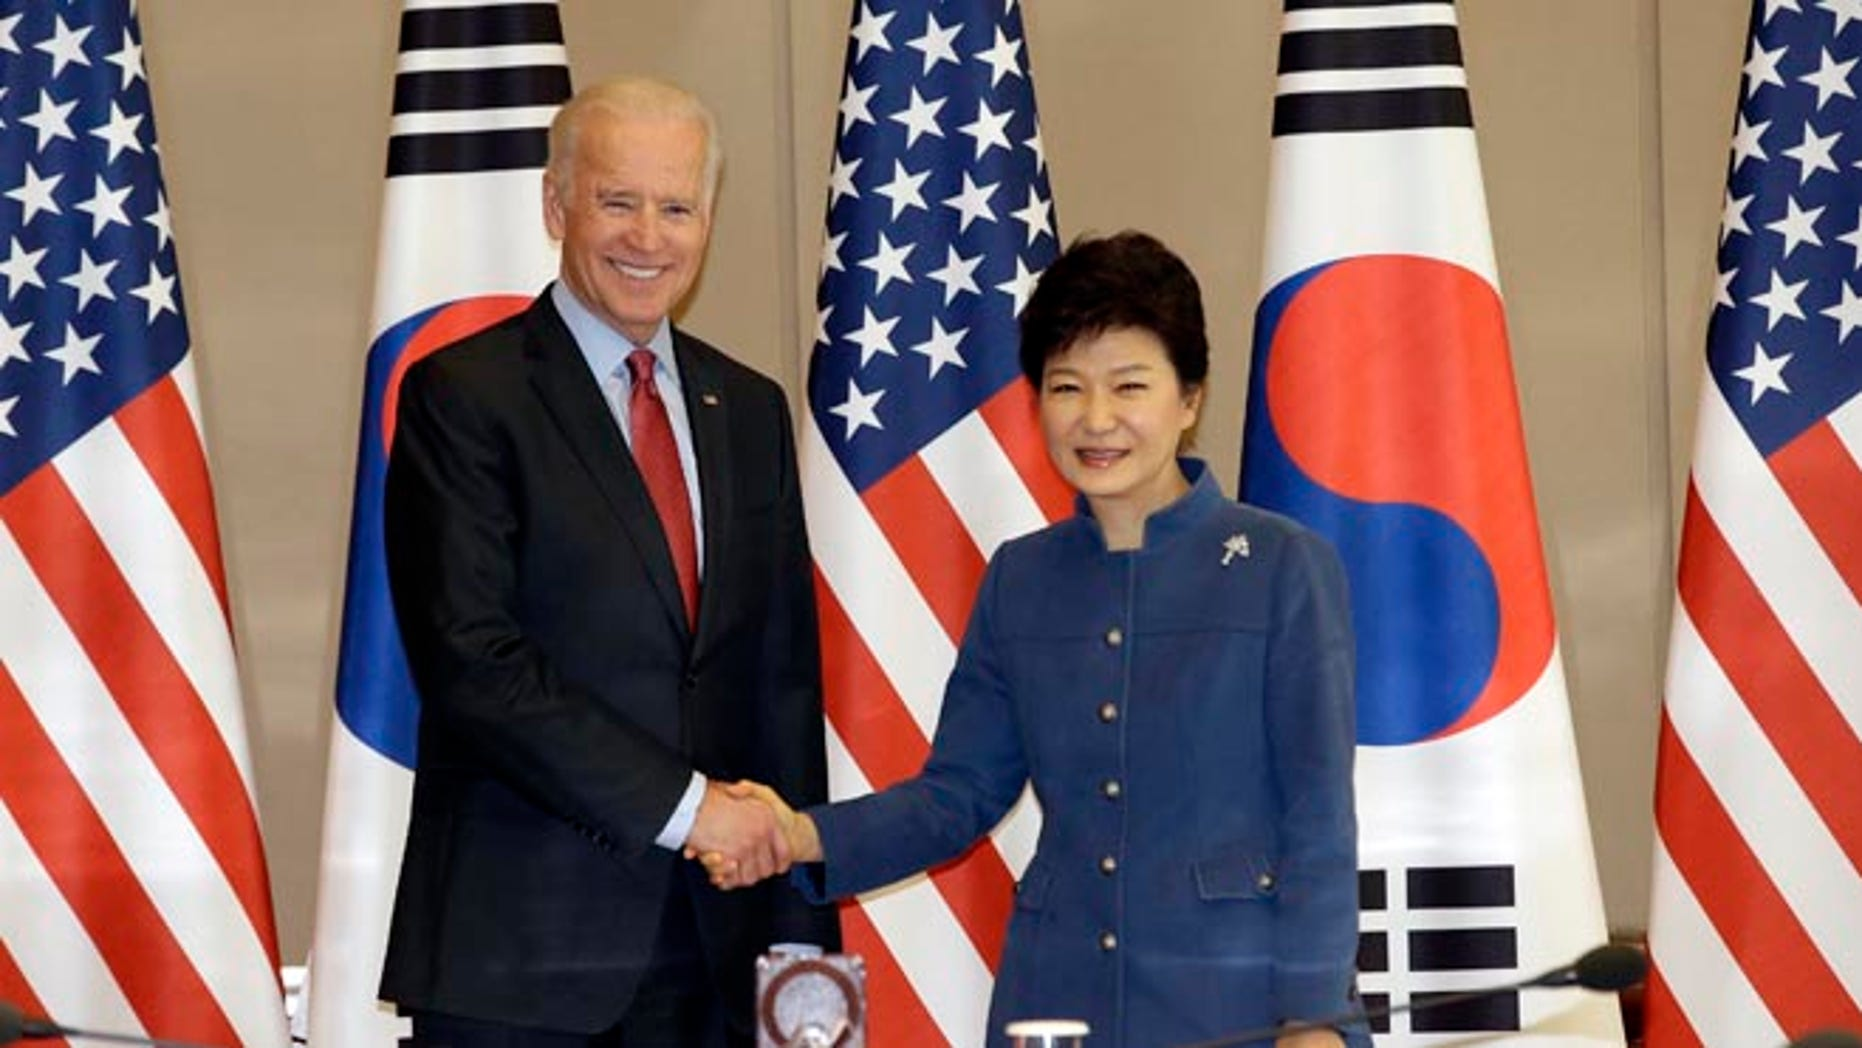 Dec. 6, 2013: South Korean President Park Geun-hye, right, shakes hands with U.S. Vice President Joe Biden before their meeting at the presidential Blue House in Seoul, South Korea.